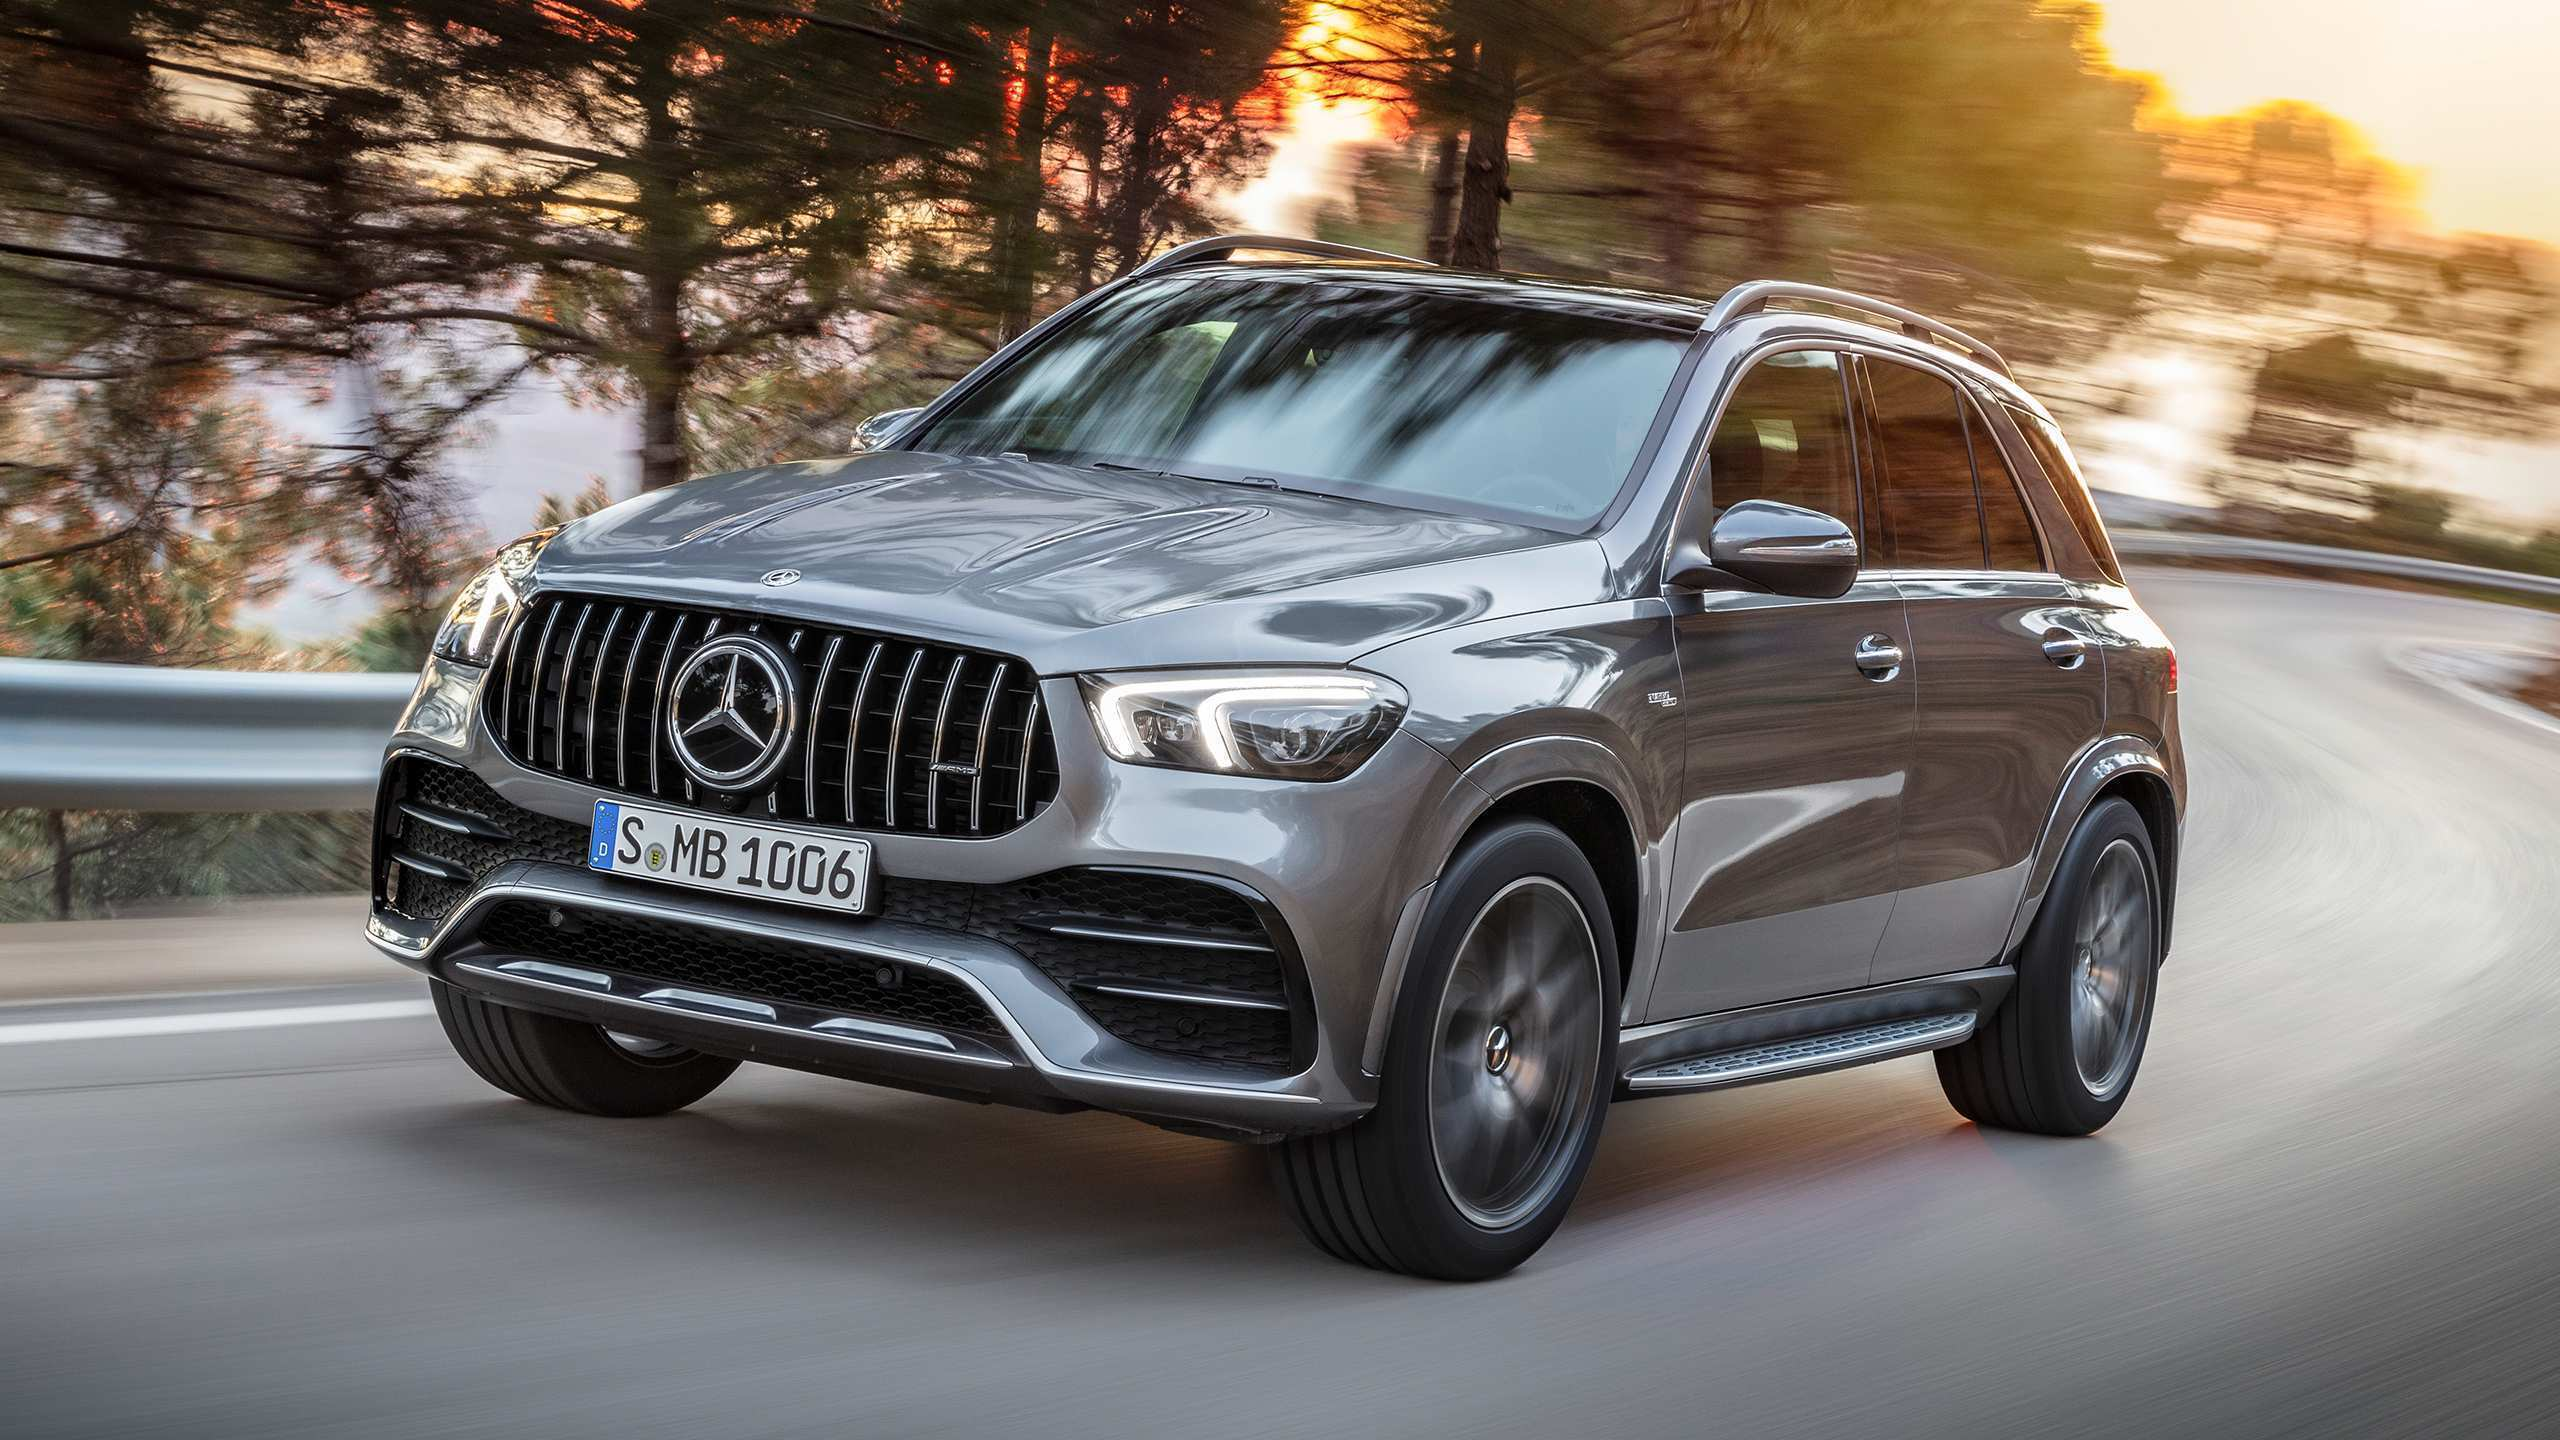 62 The Best 2019 Mercedes GLE Concept And Review